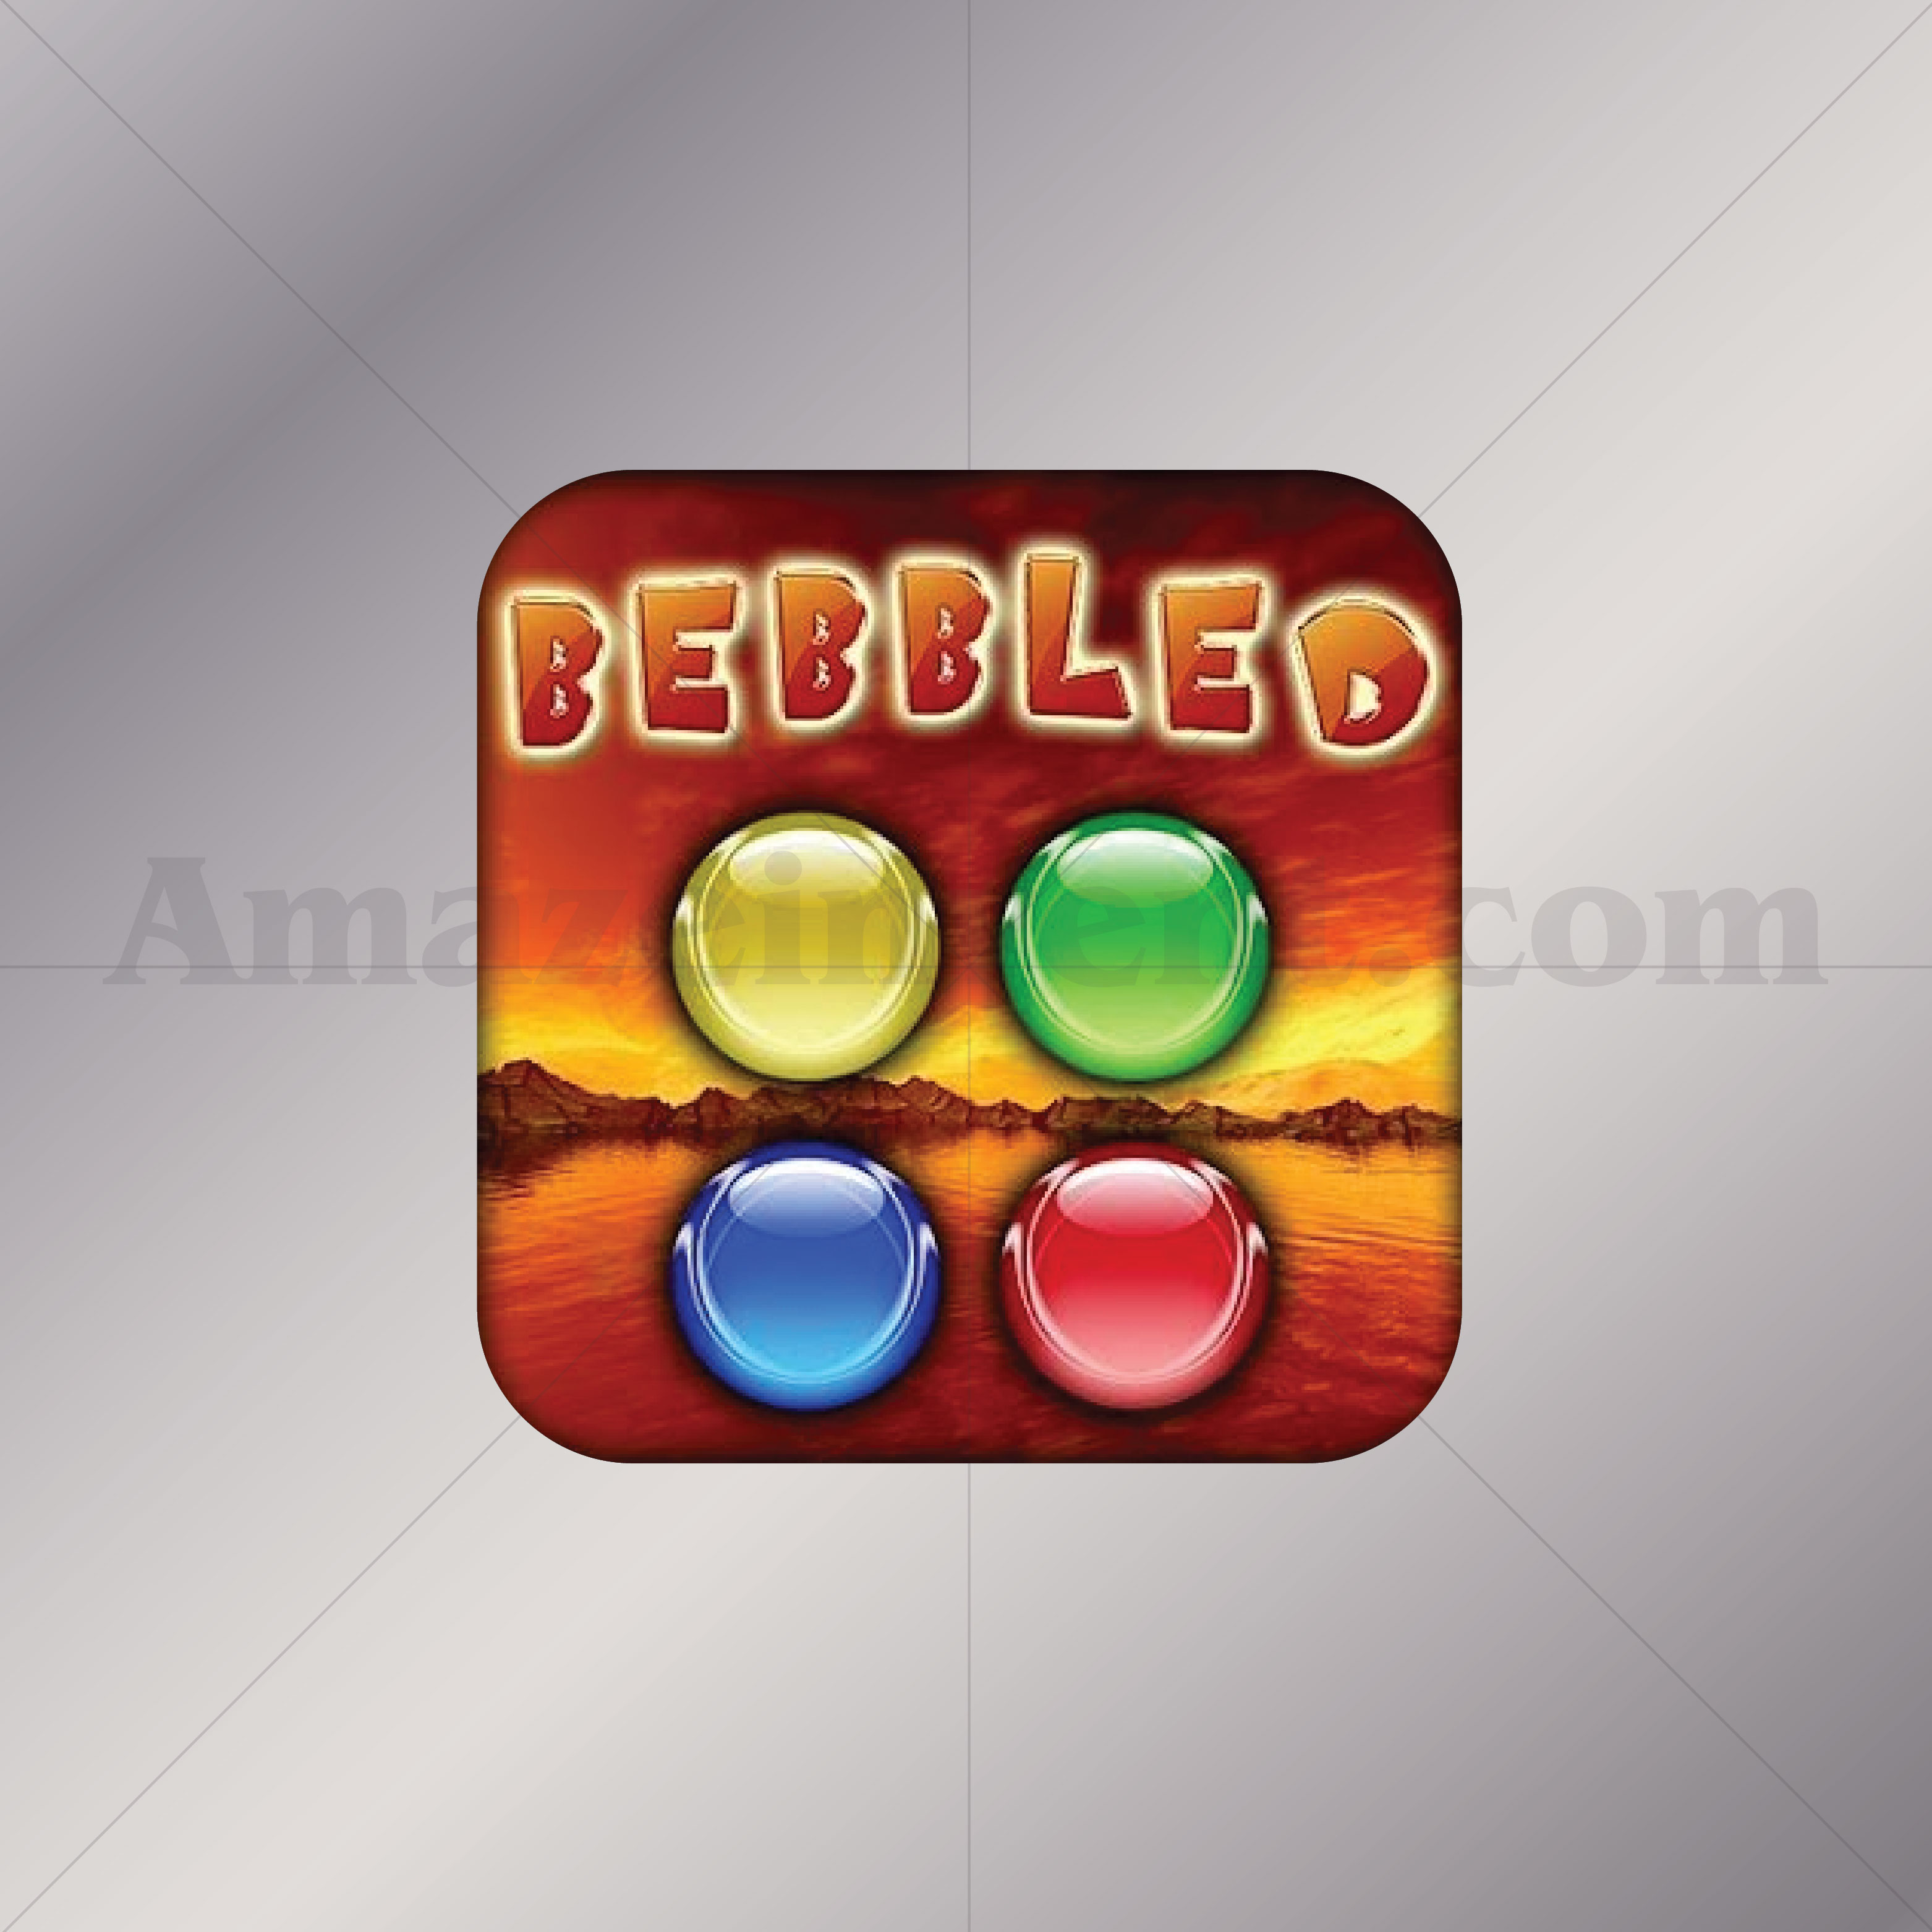 Android app Bebbled